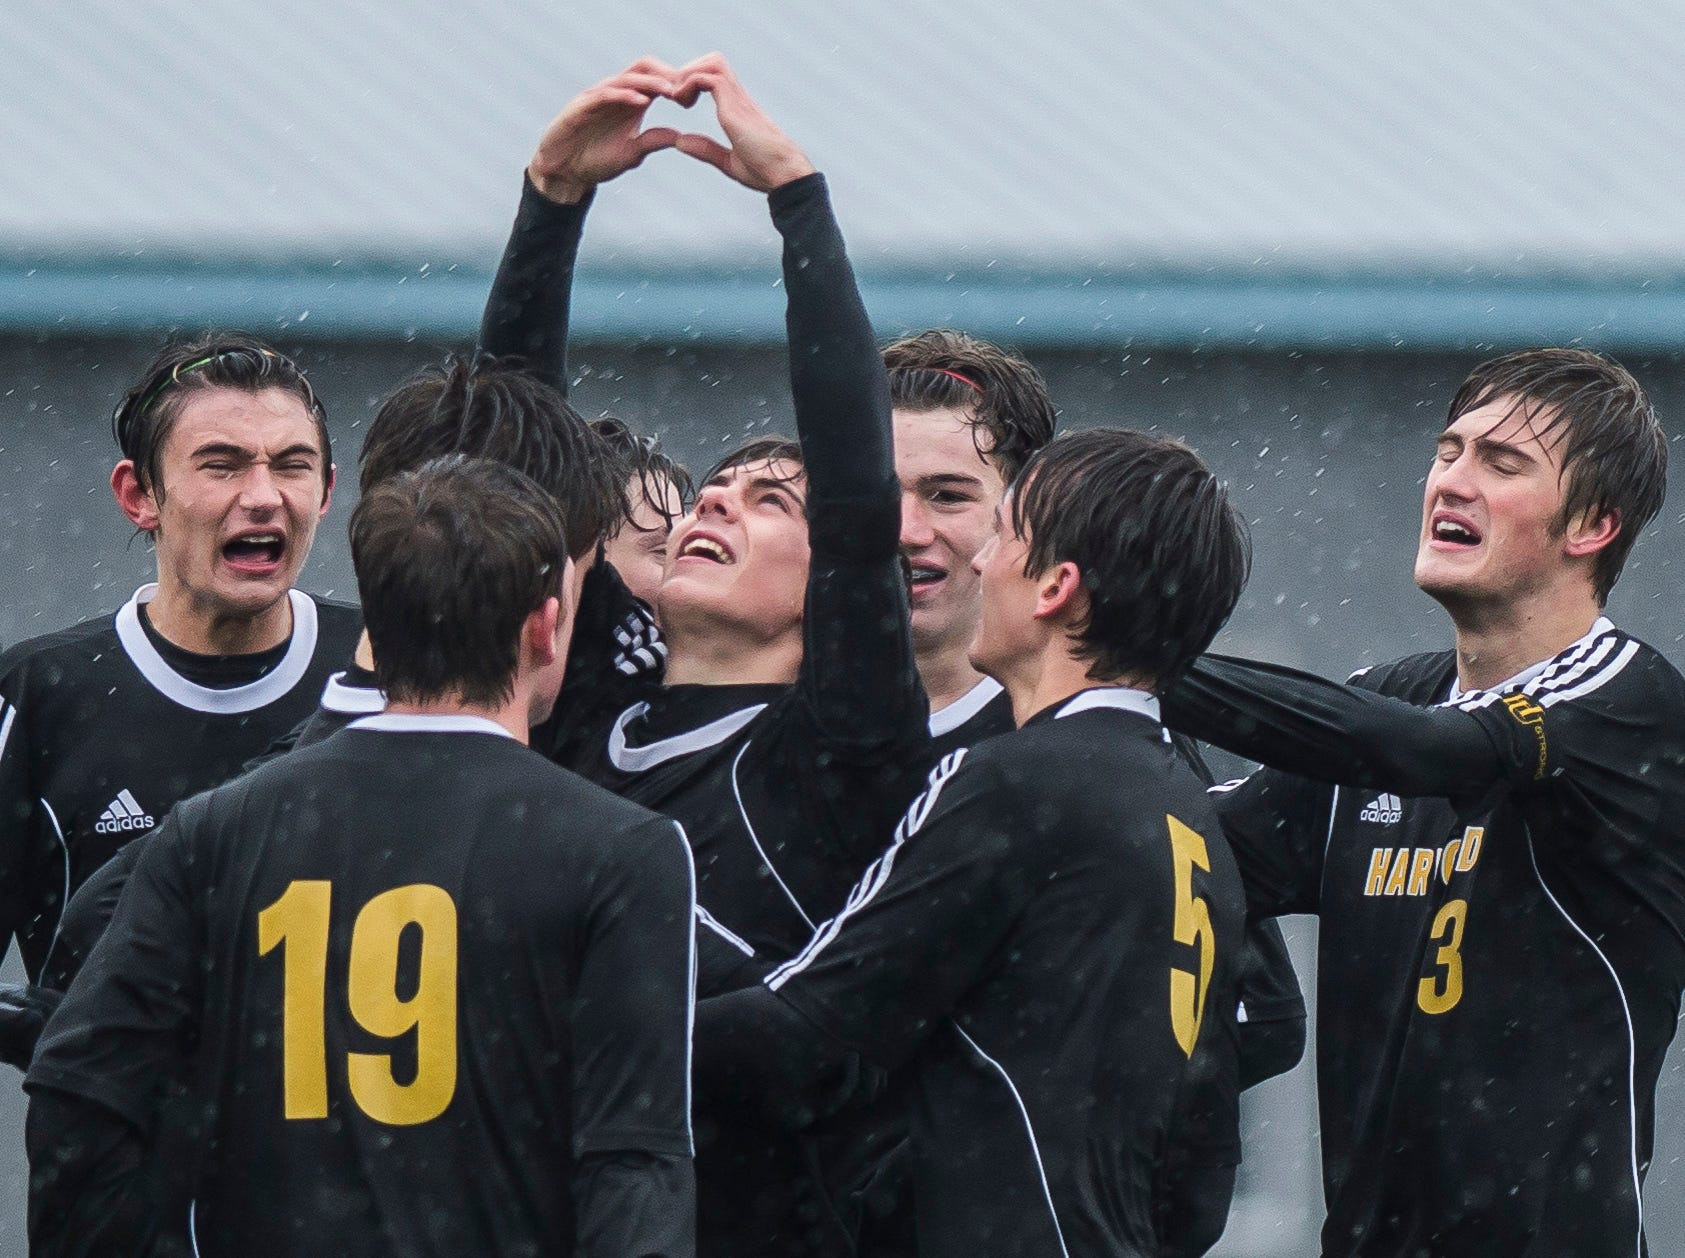 Harwood #10 Charlie Zschau gestures to he sky after scoring during their Div. 2 Vermont State high school boy's soccer championship game against Woodstock at South Burlington High School on Saturday, Nov. 3, 2018. Hardwood Union won, 3-0.